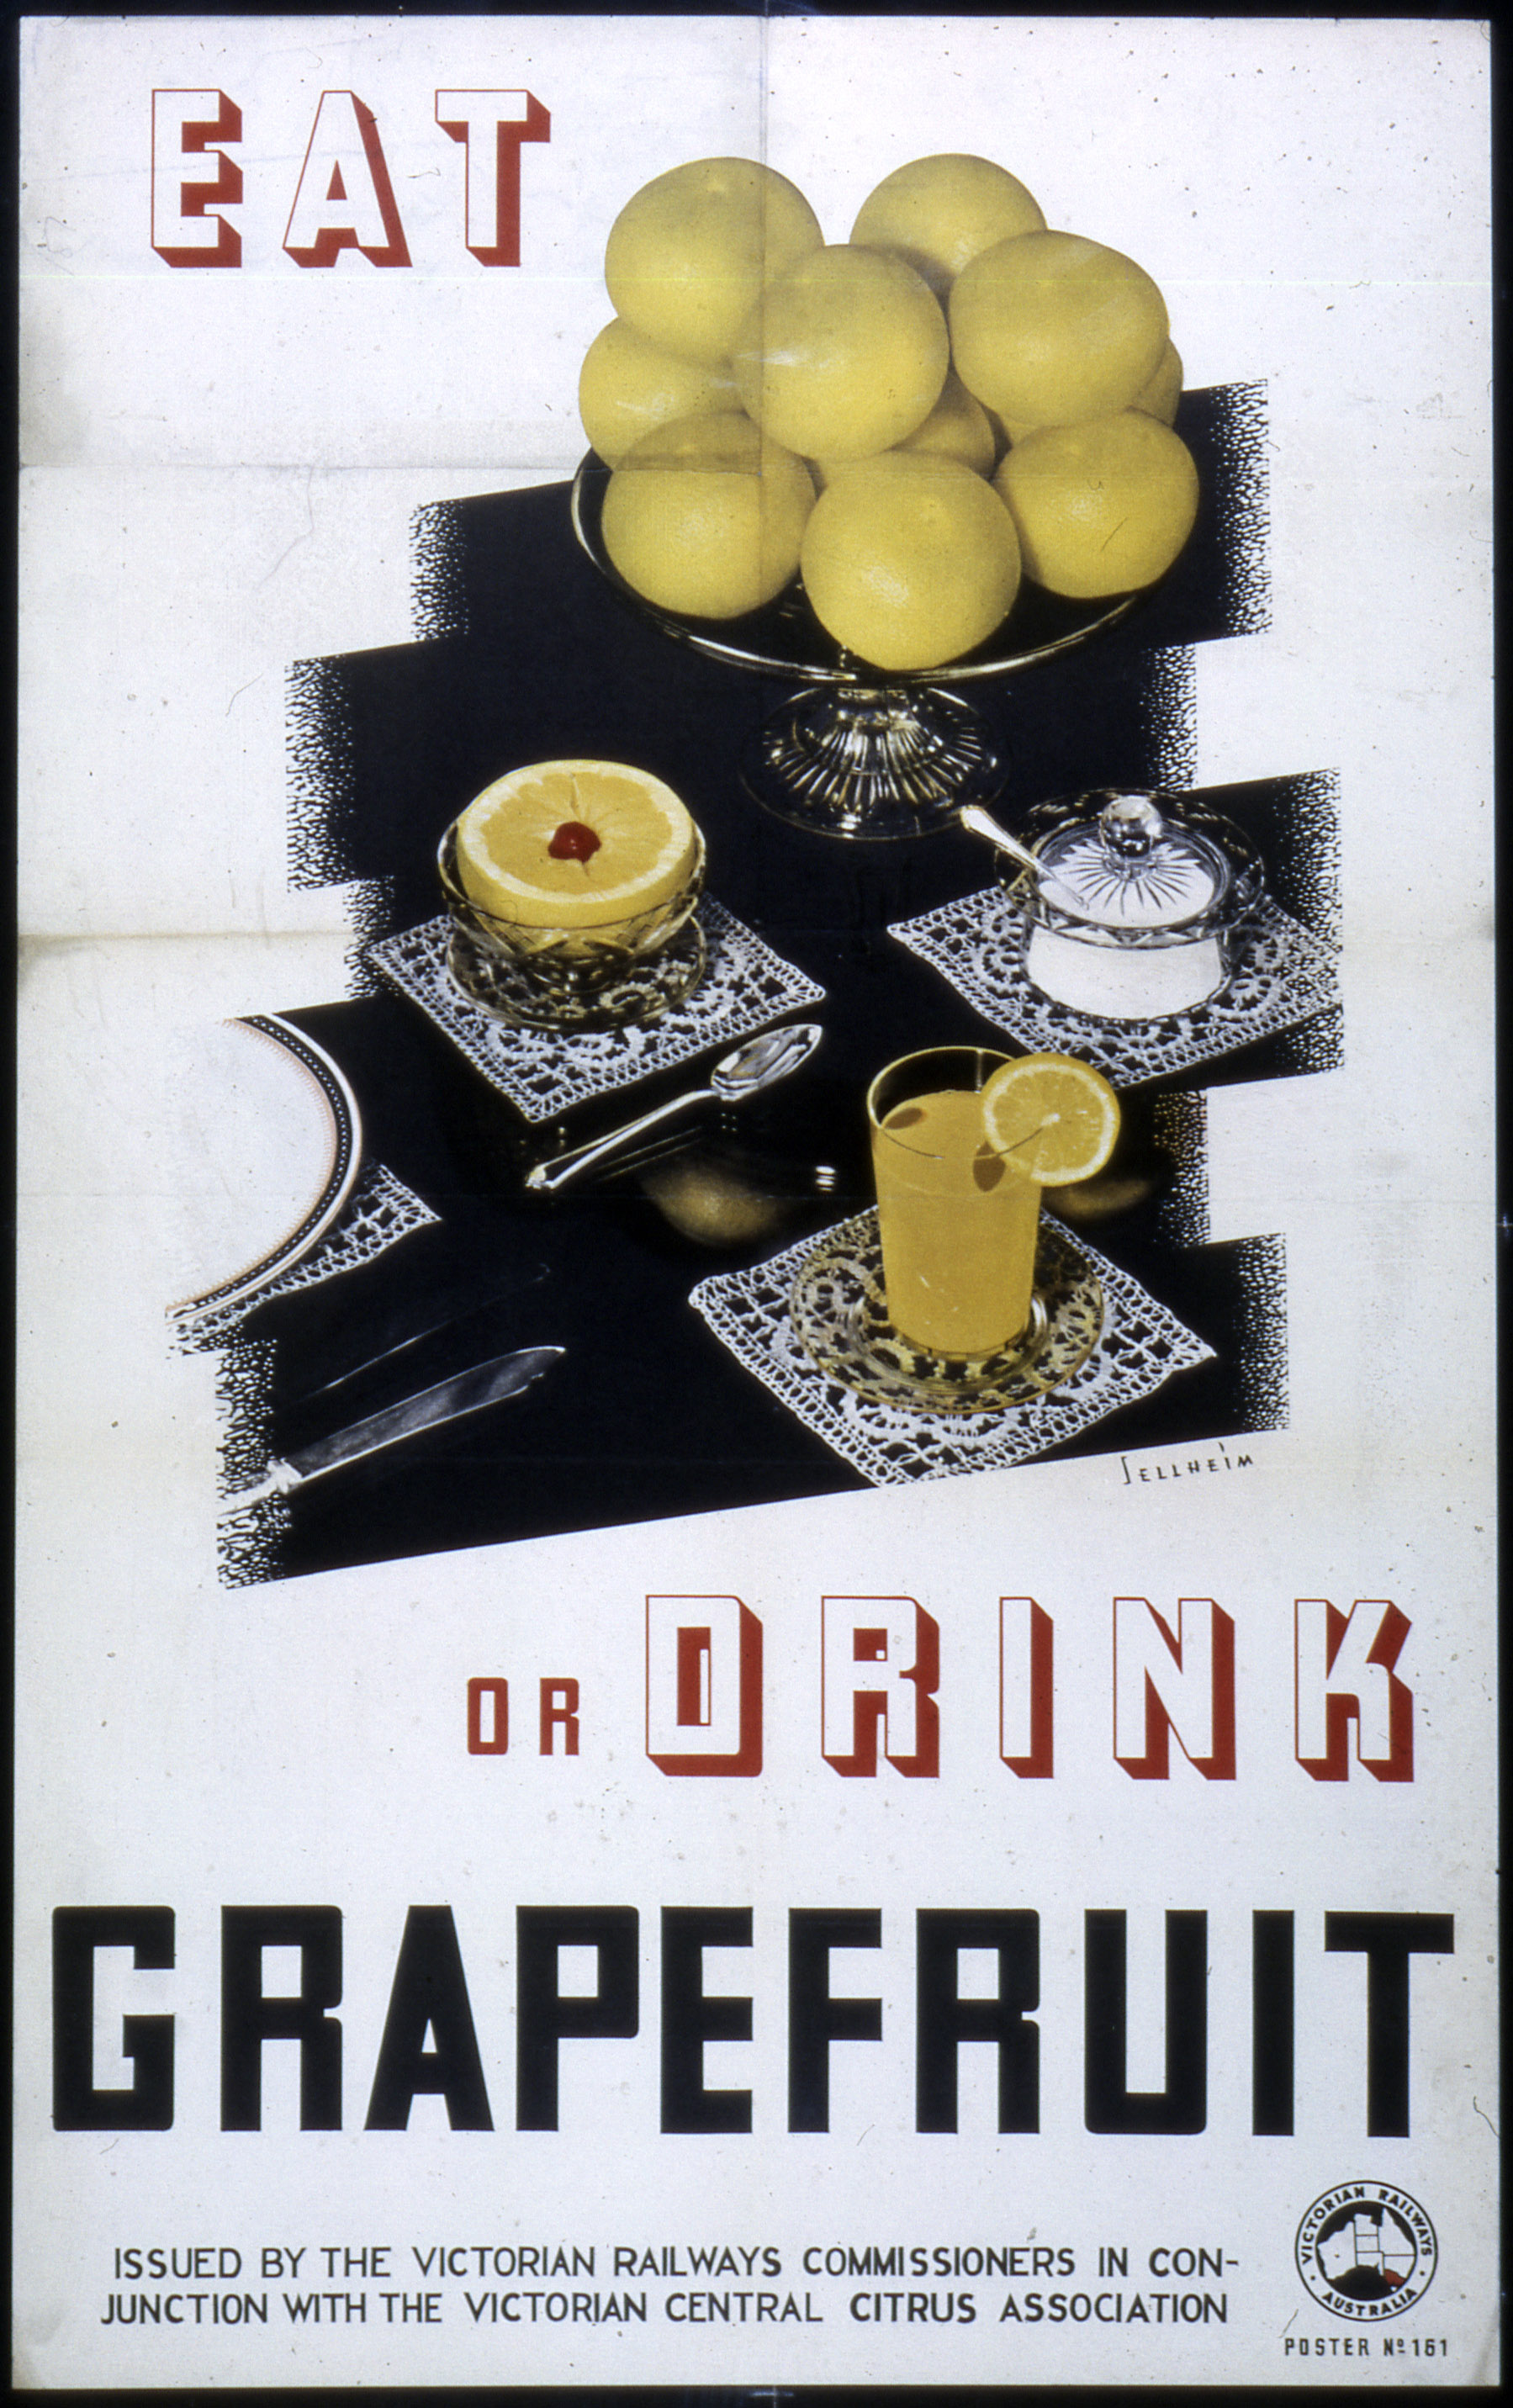 Eat or Drink Grapefruit poster by Gert Sellheim, circa 1930s